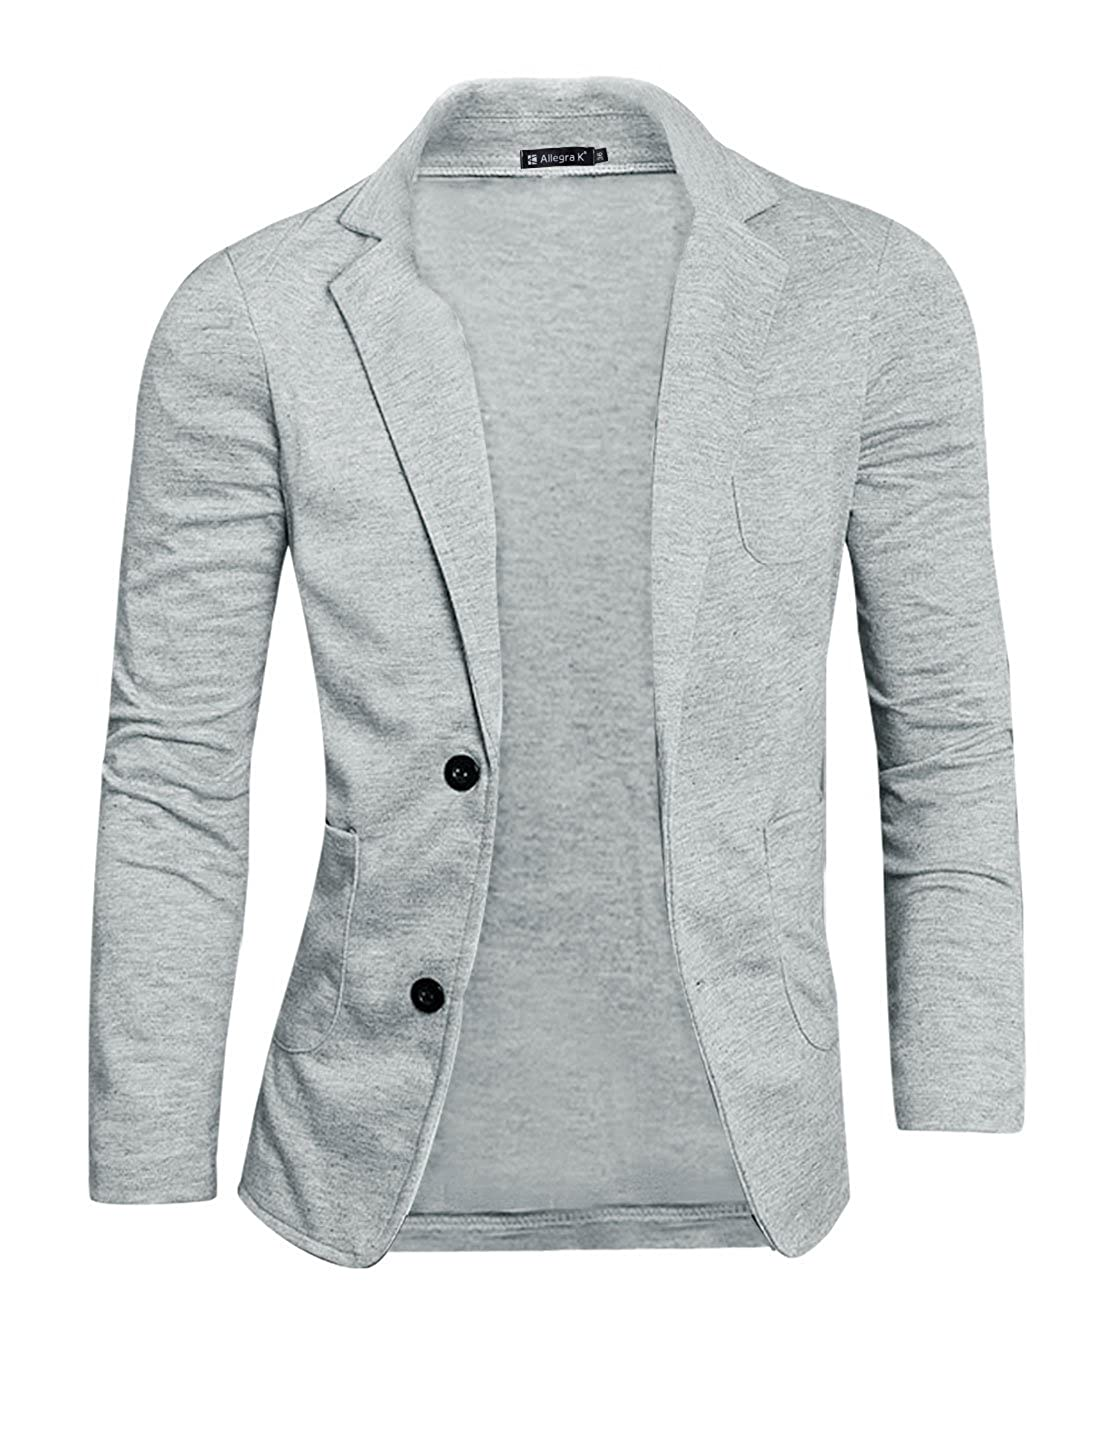 uxcell Men Notched Lapel Solid Color Pockets Front Long Sleeve Knit Blazer g12121200ux0517